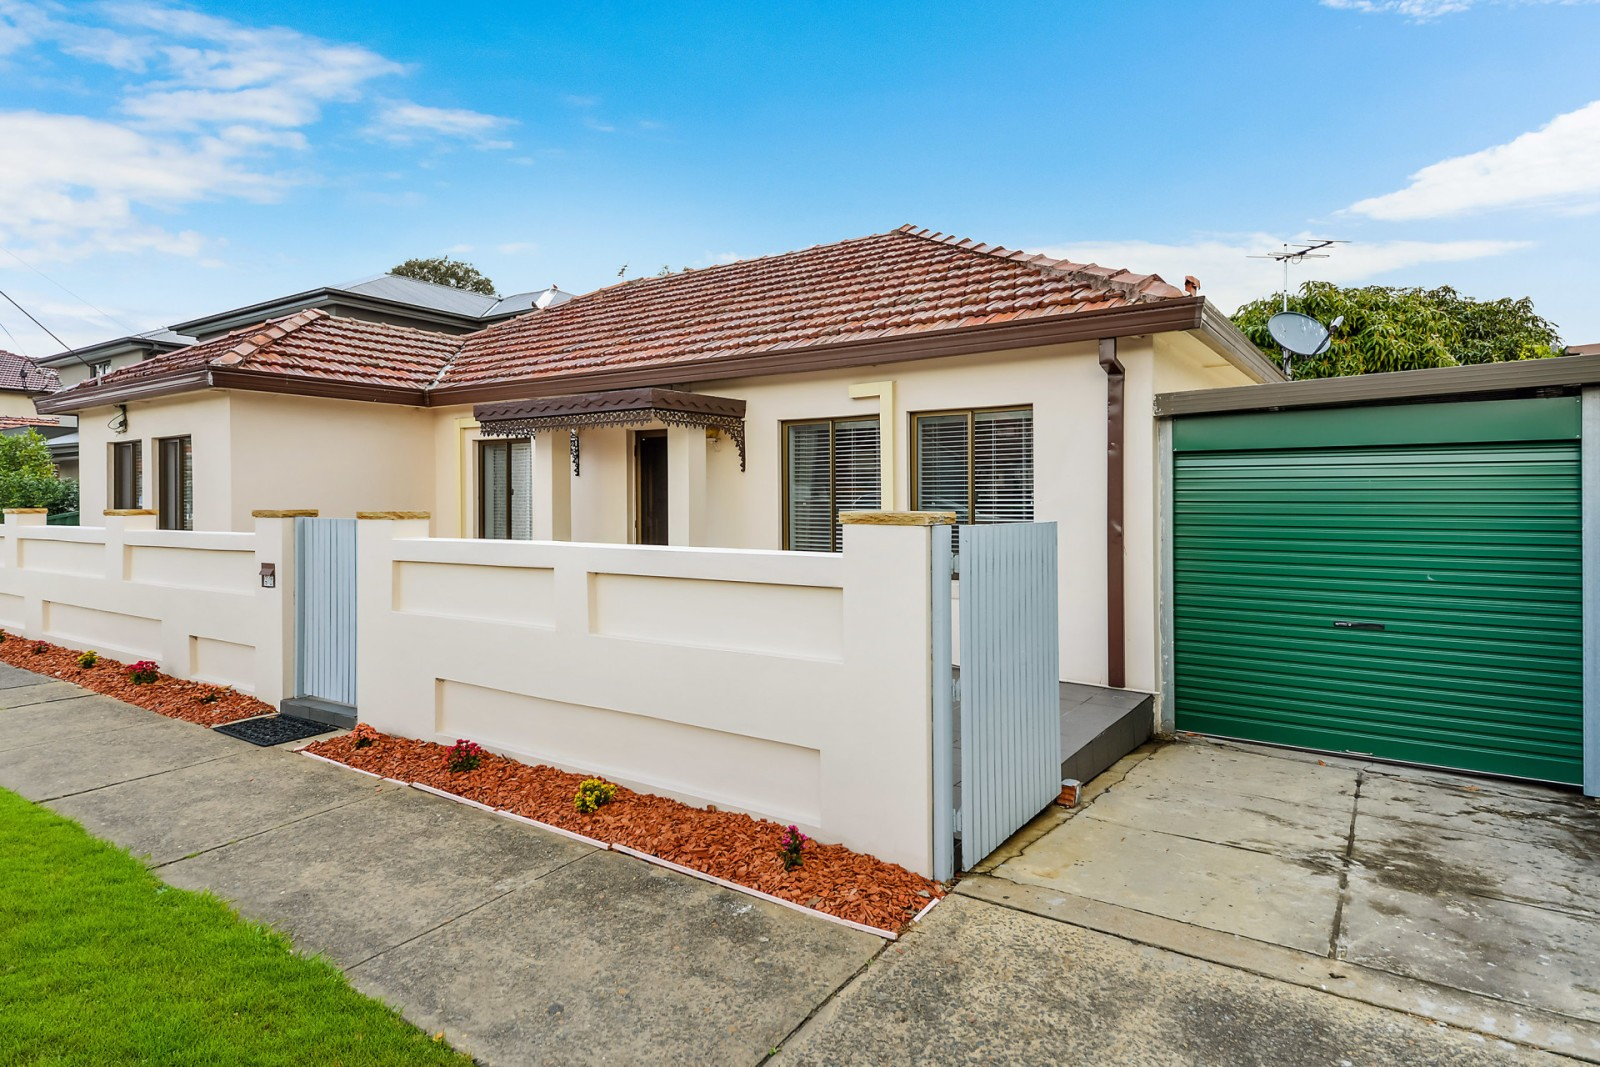 96 Wentworth Ave, Pagewood NSW 2035, Image 0